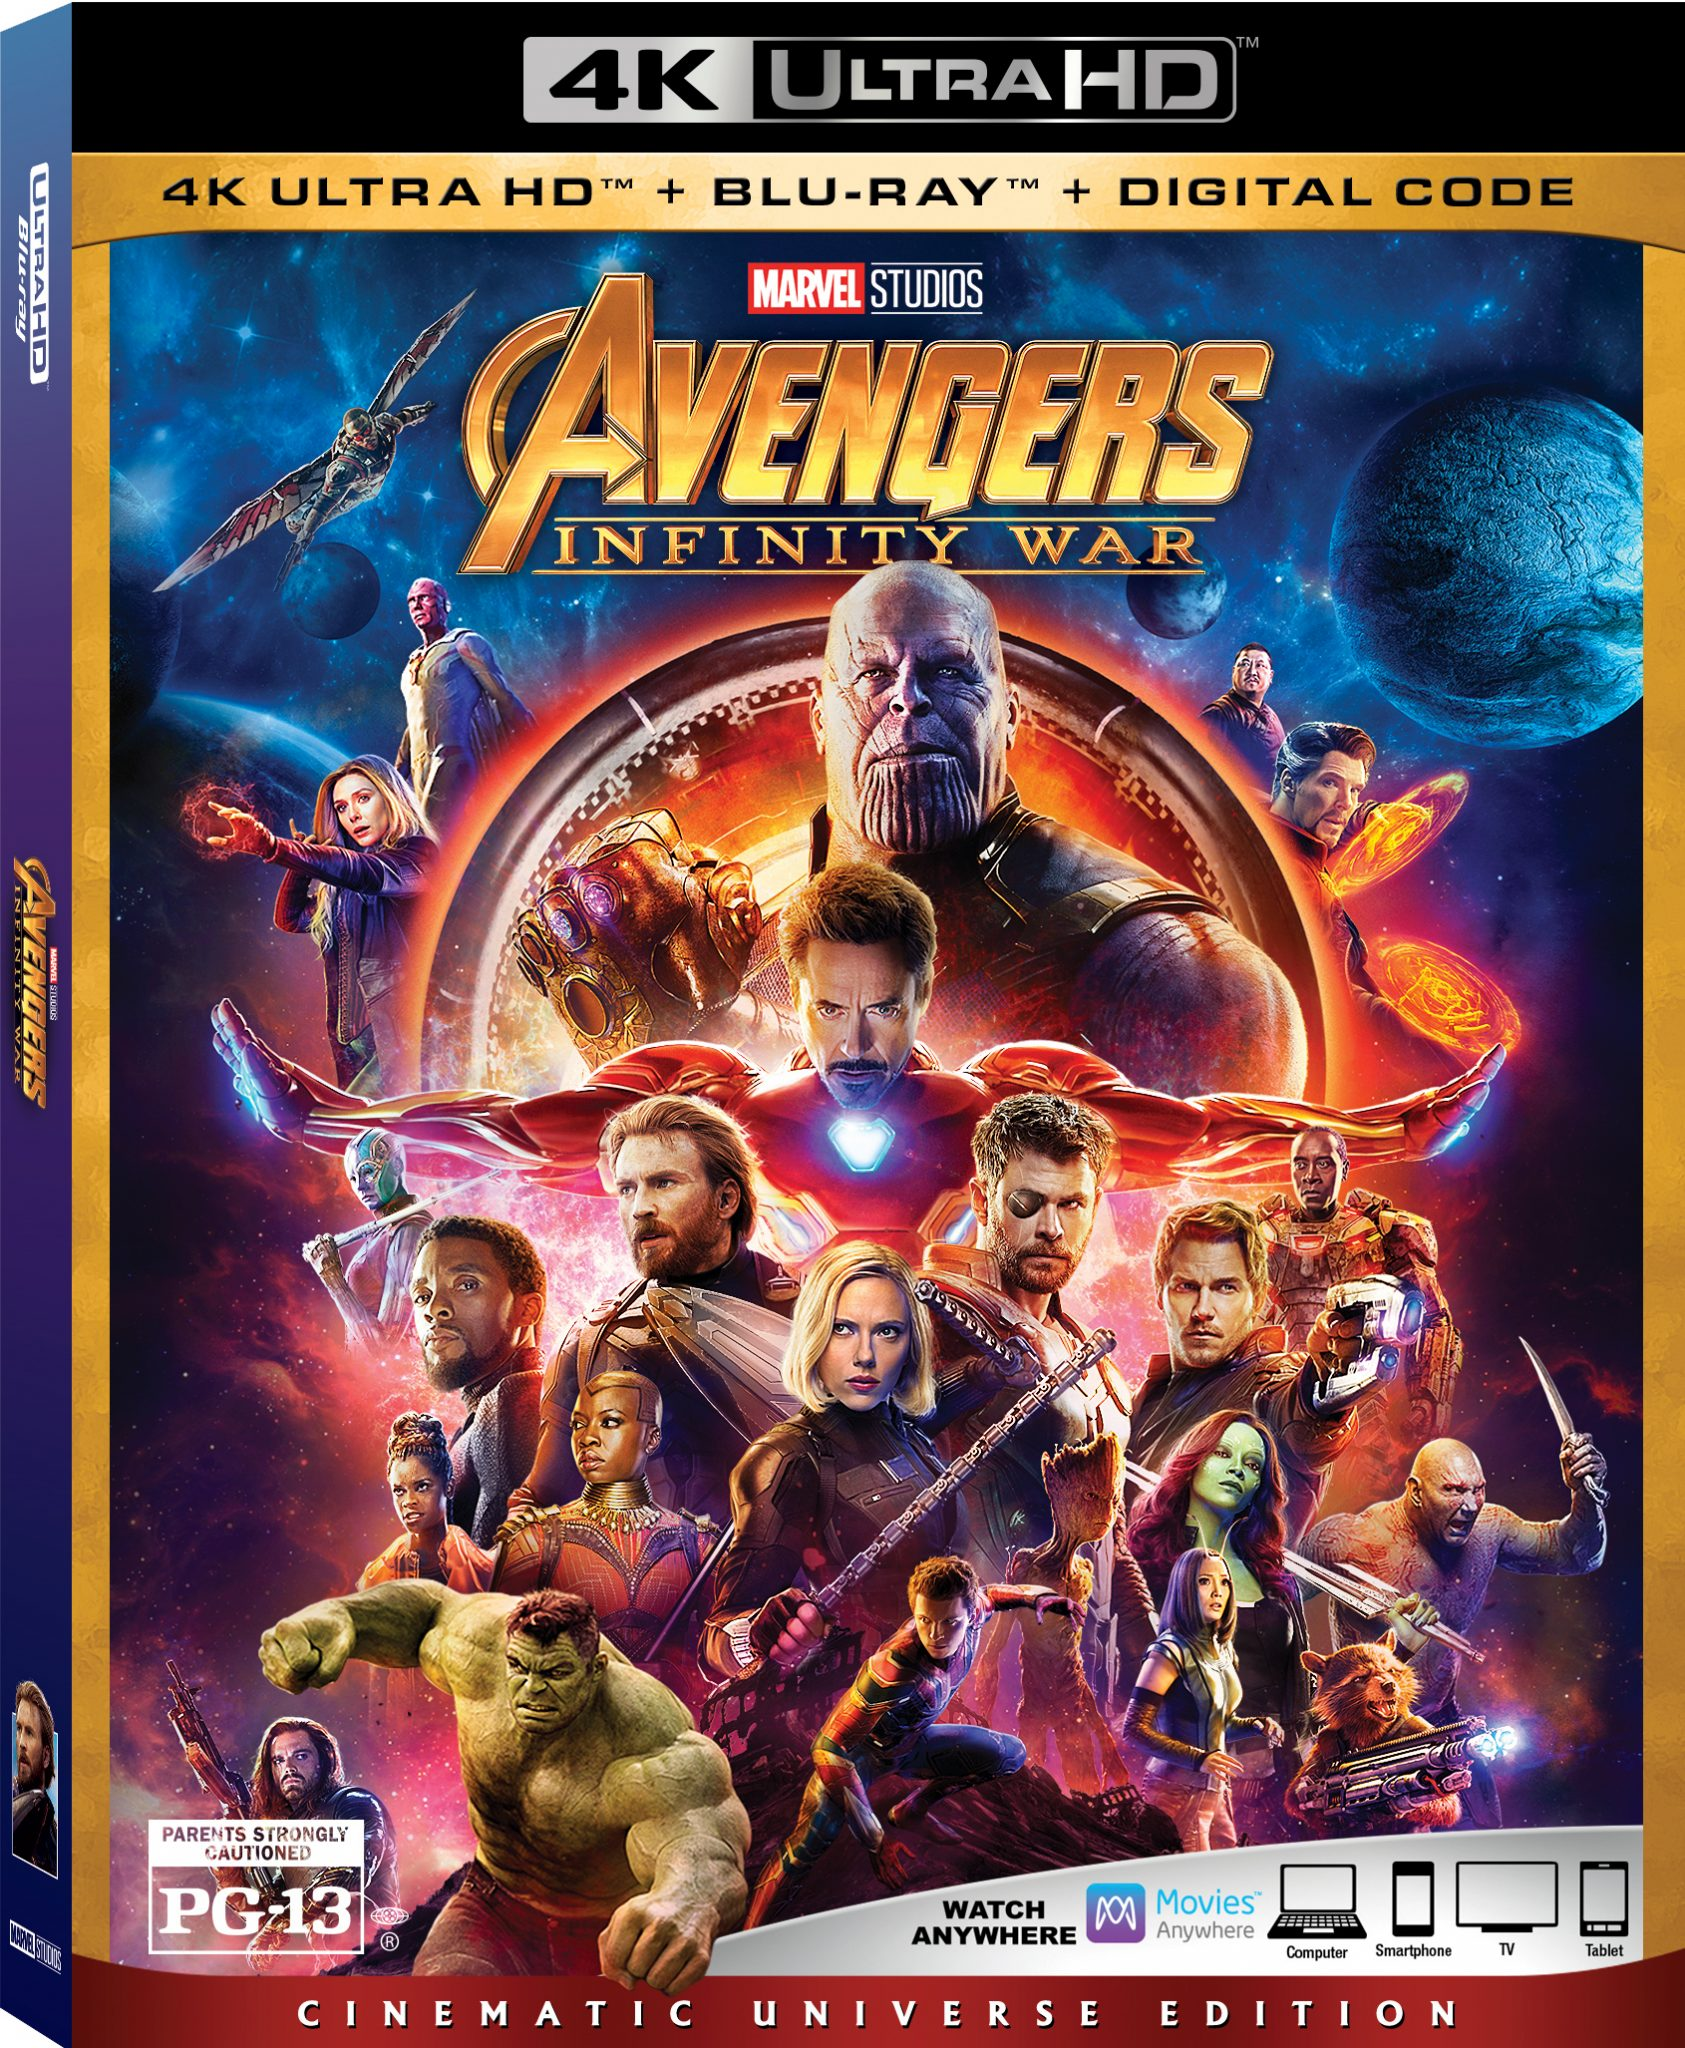 Avengers: Infinity War is out on Blu-Ray TODAY, 7/31